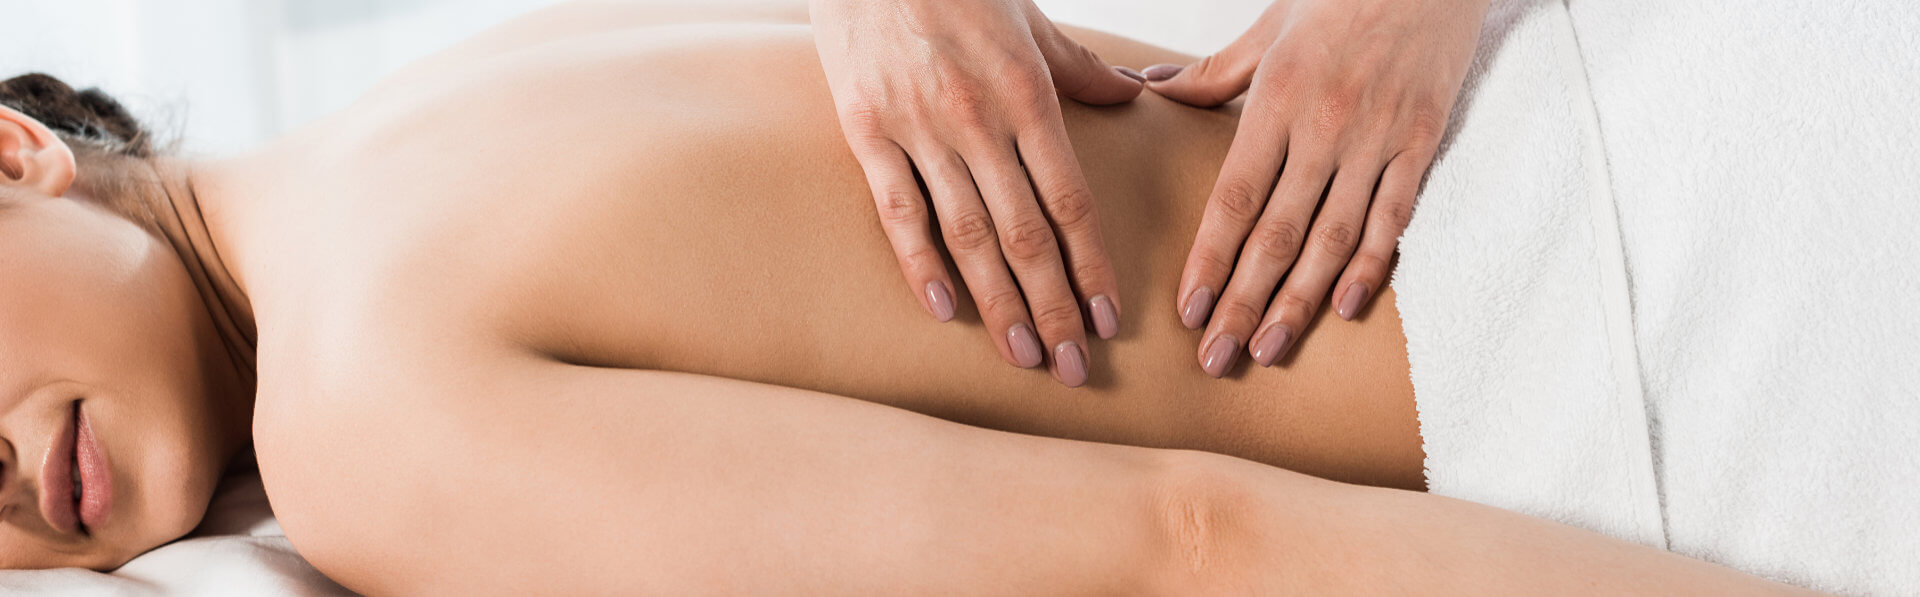 woman getting spa massage